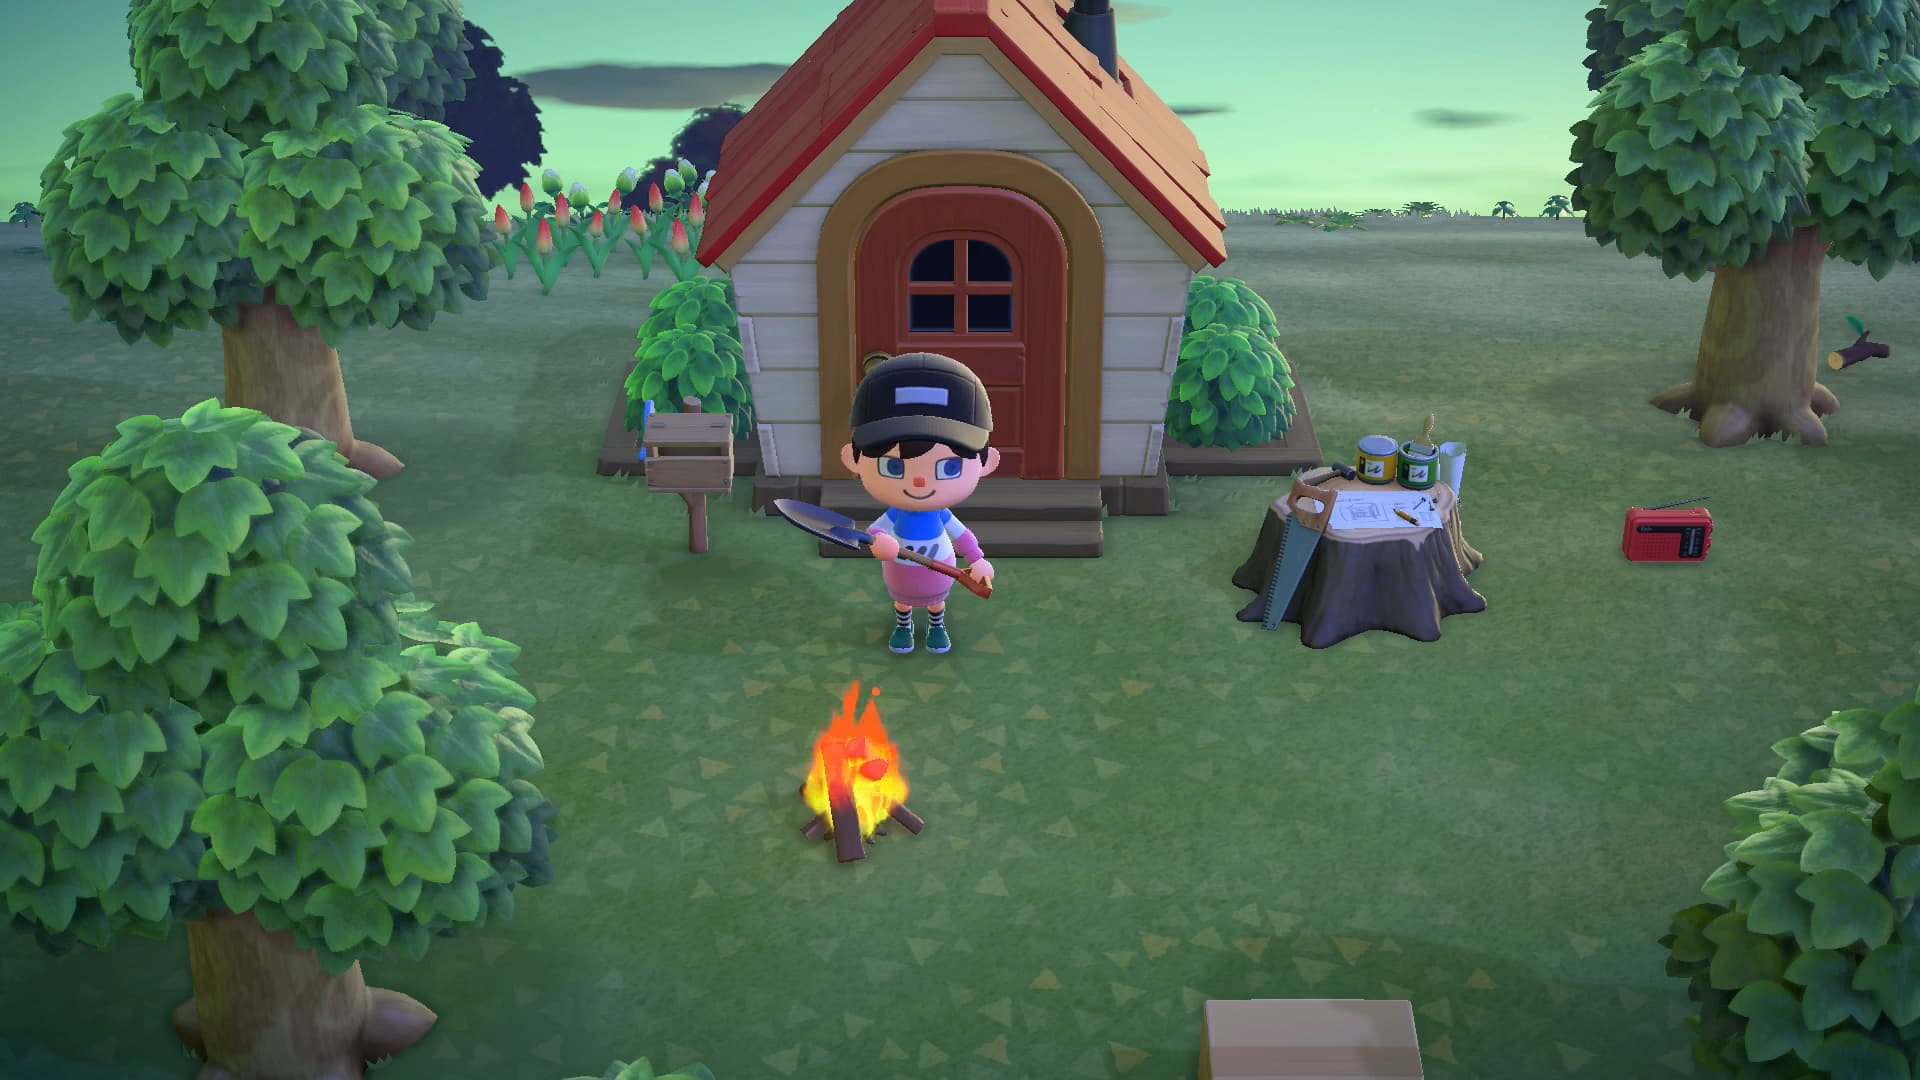 How To Change Roof Color In Animal Crossing New Horizons Gamepur